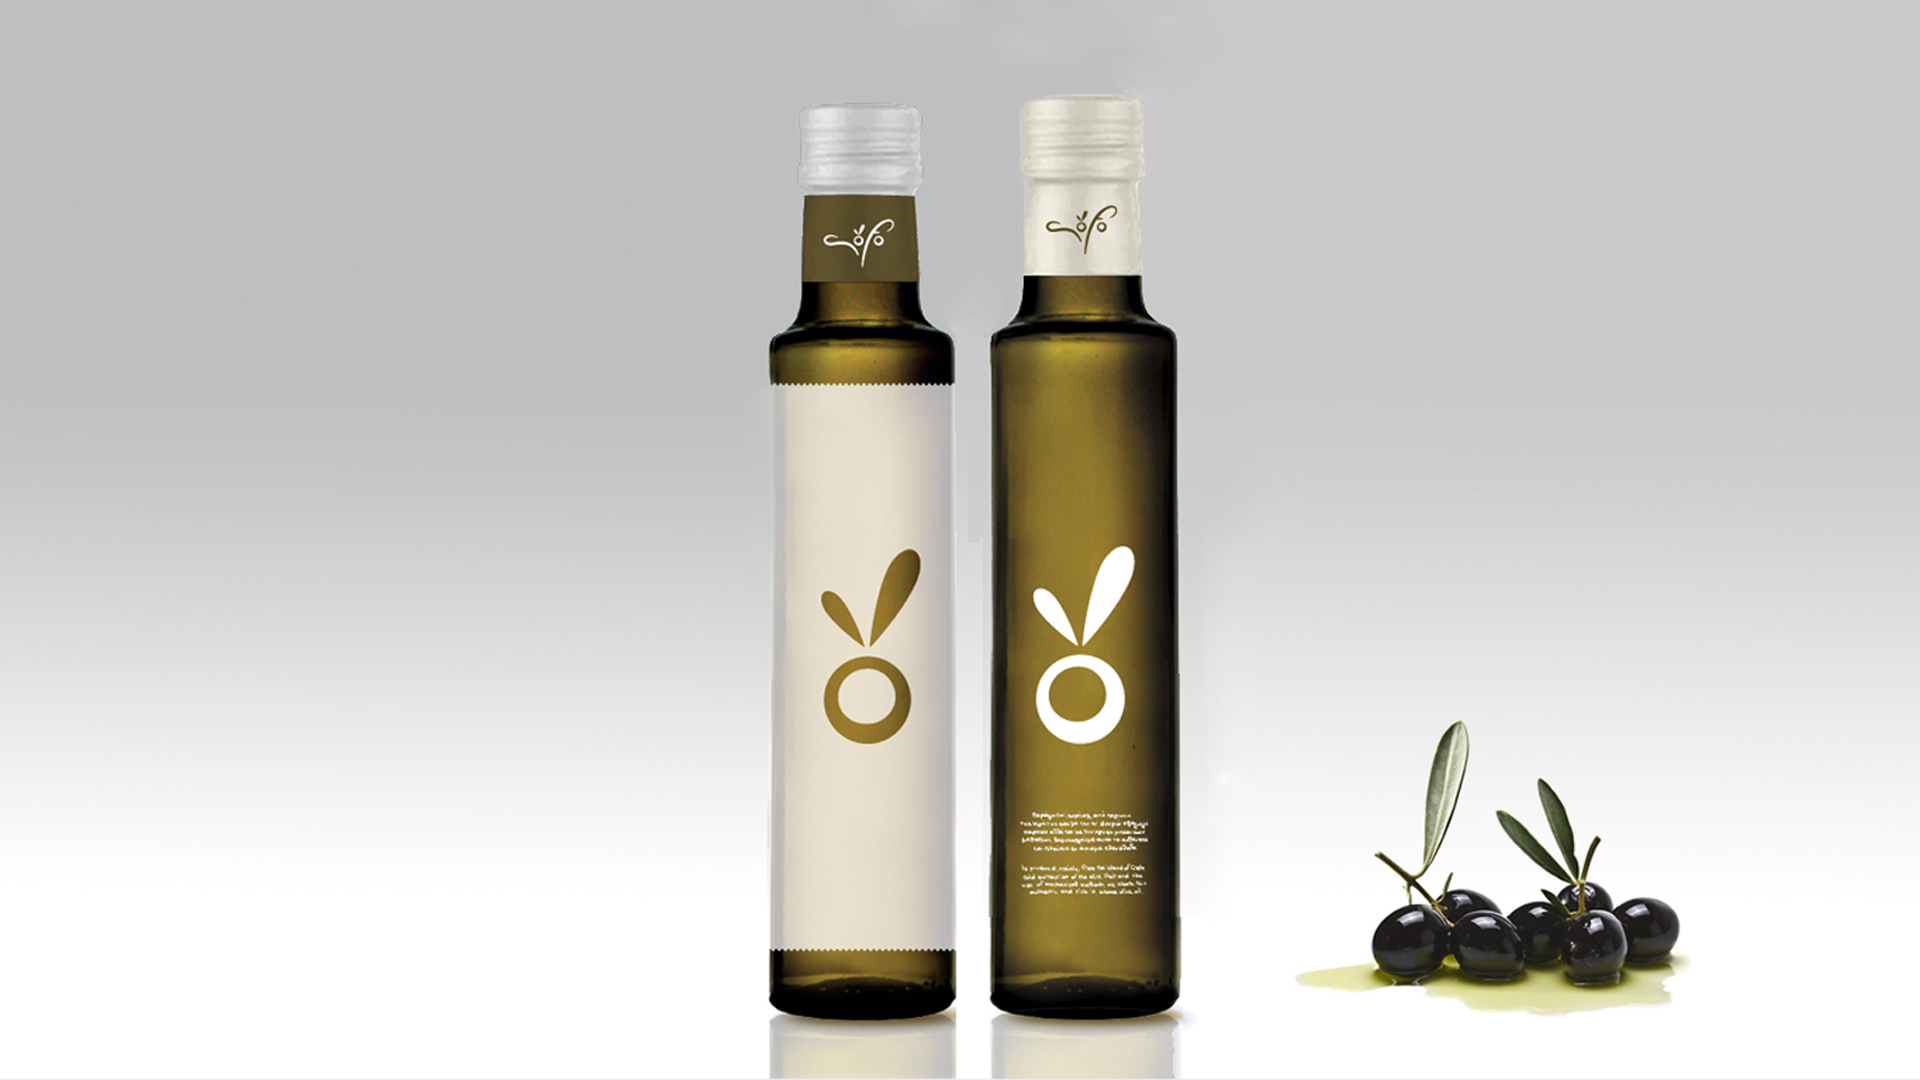 olive_oil_designpark_sofo_packaging